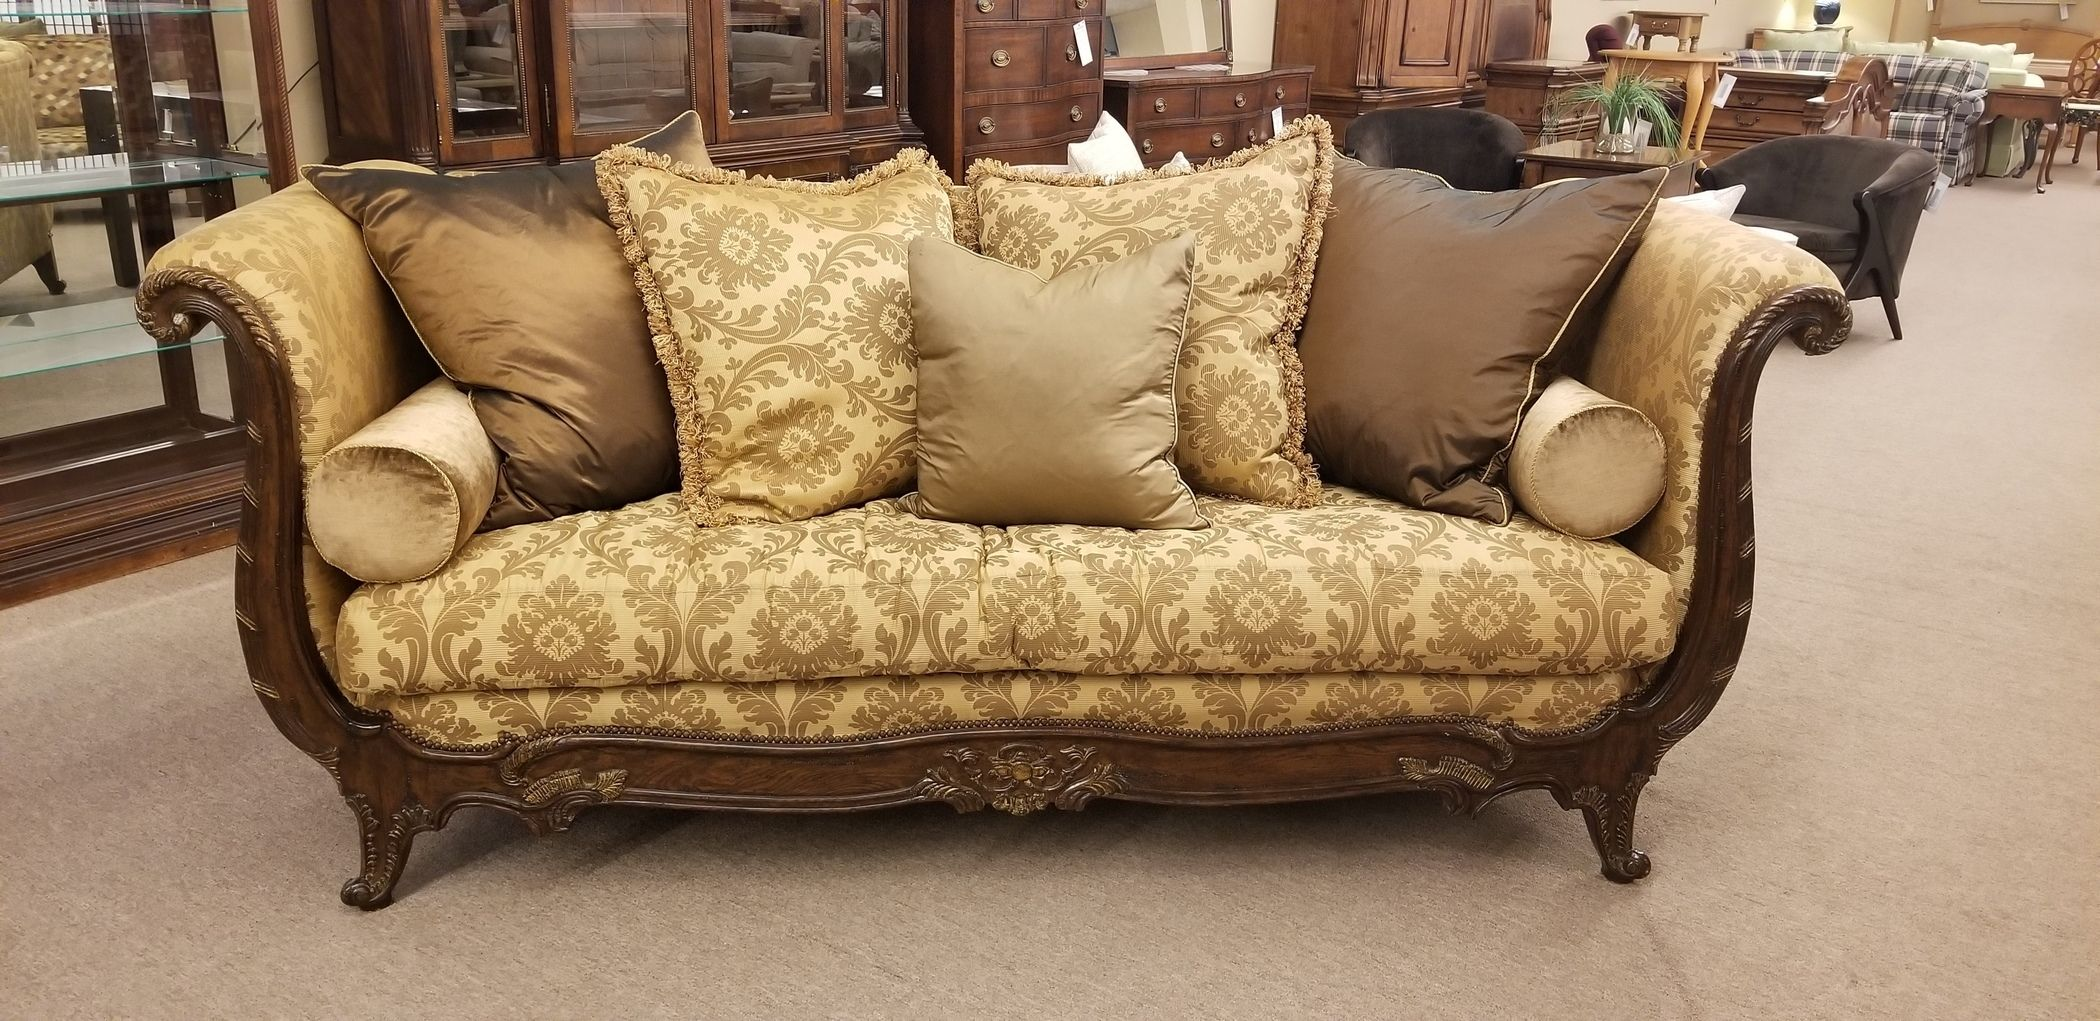 Image result for throw pillow with different textures wool,leather,linen on a couch